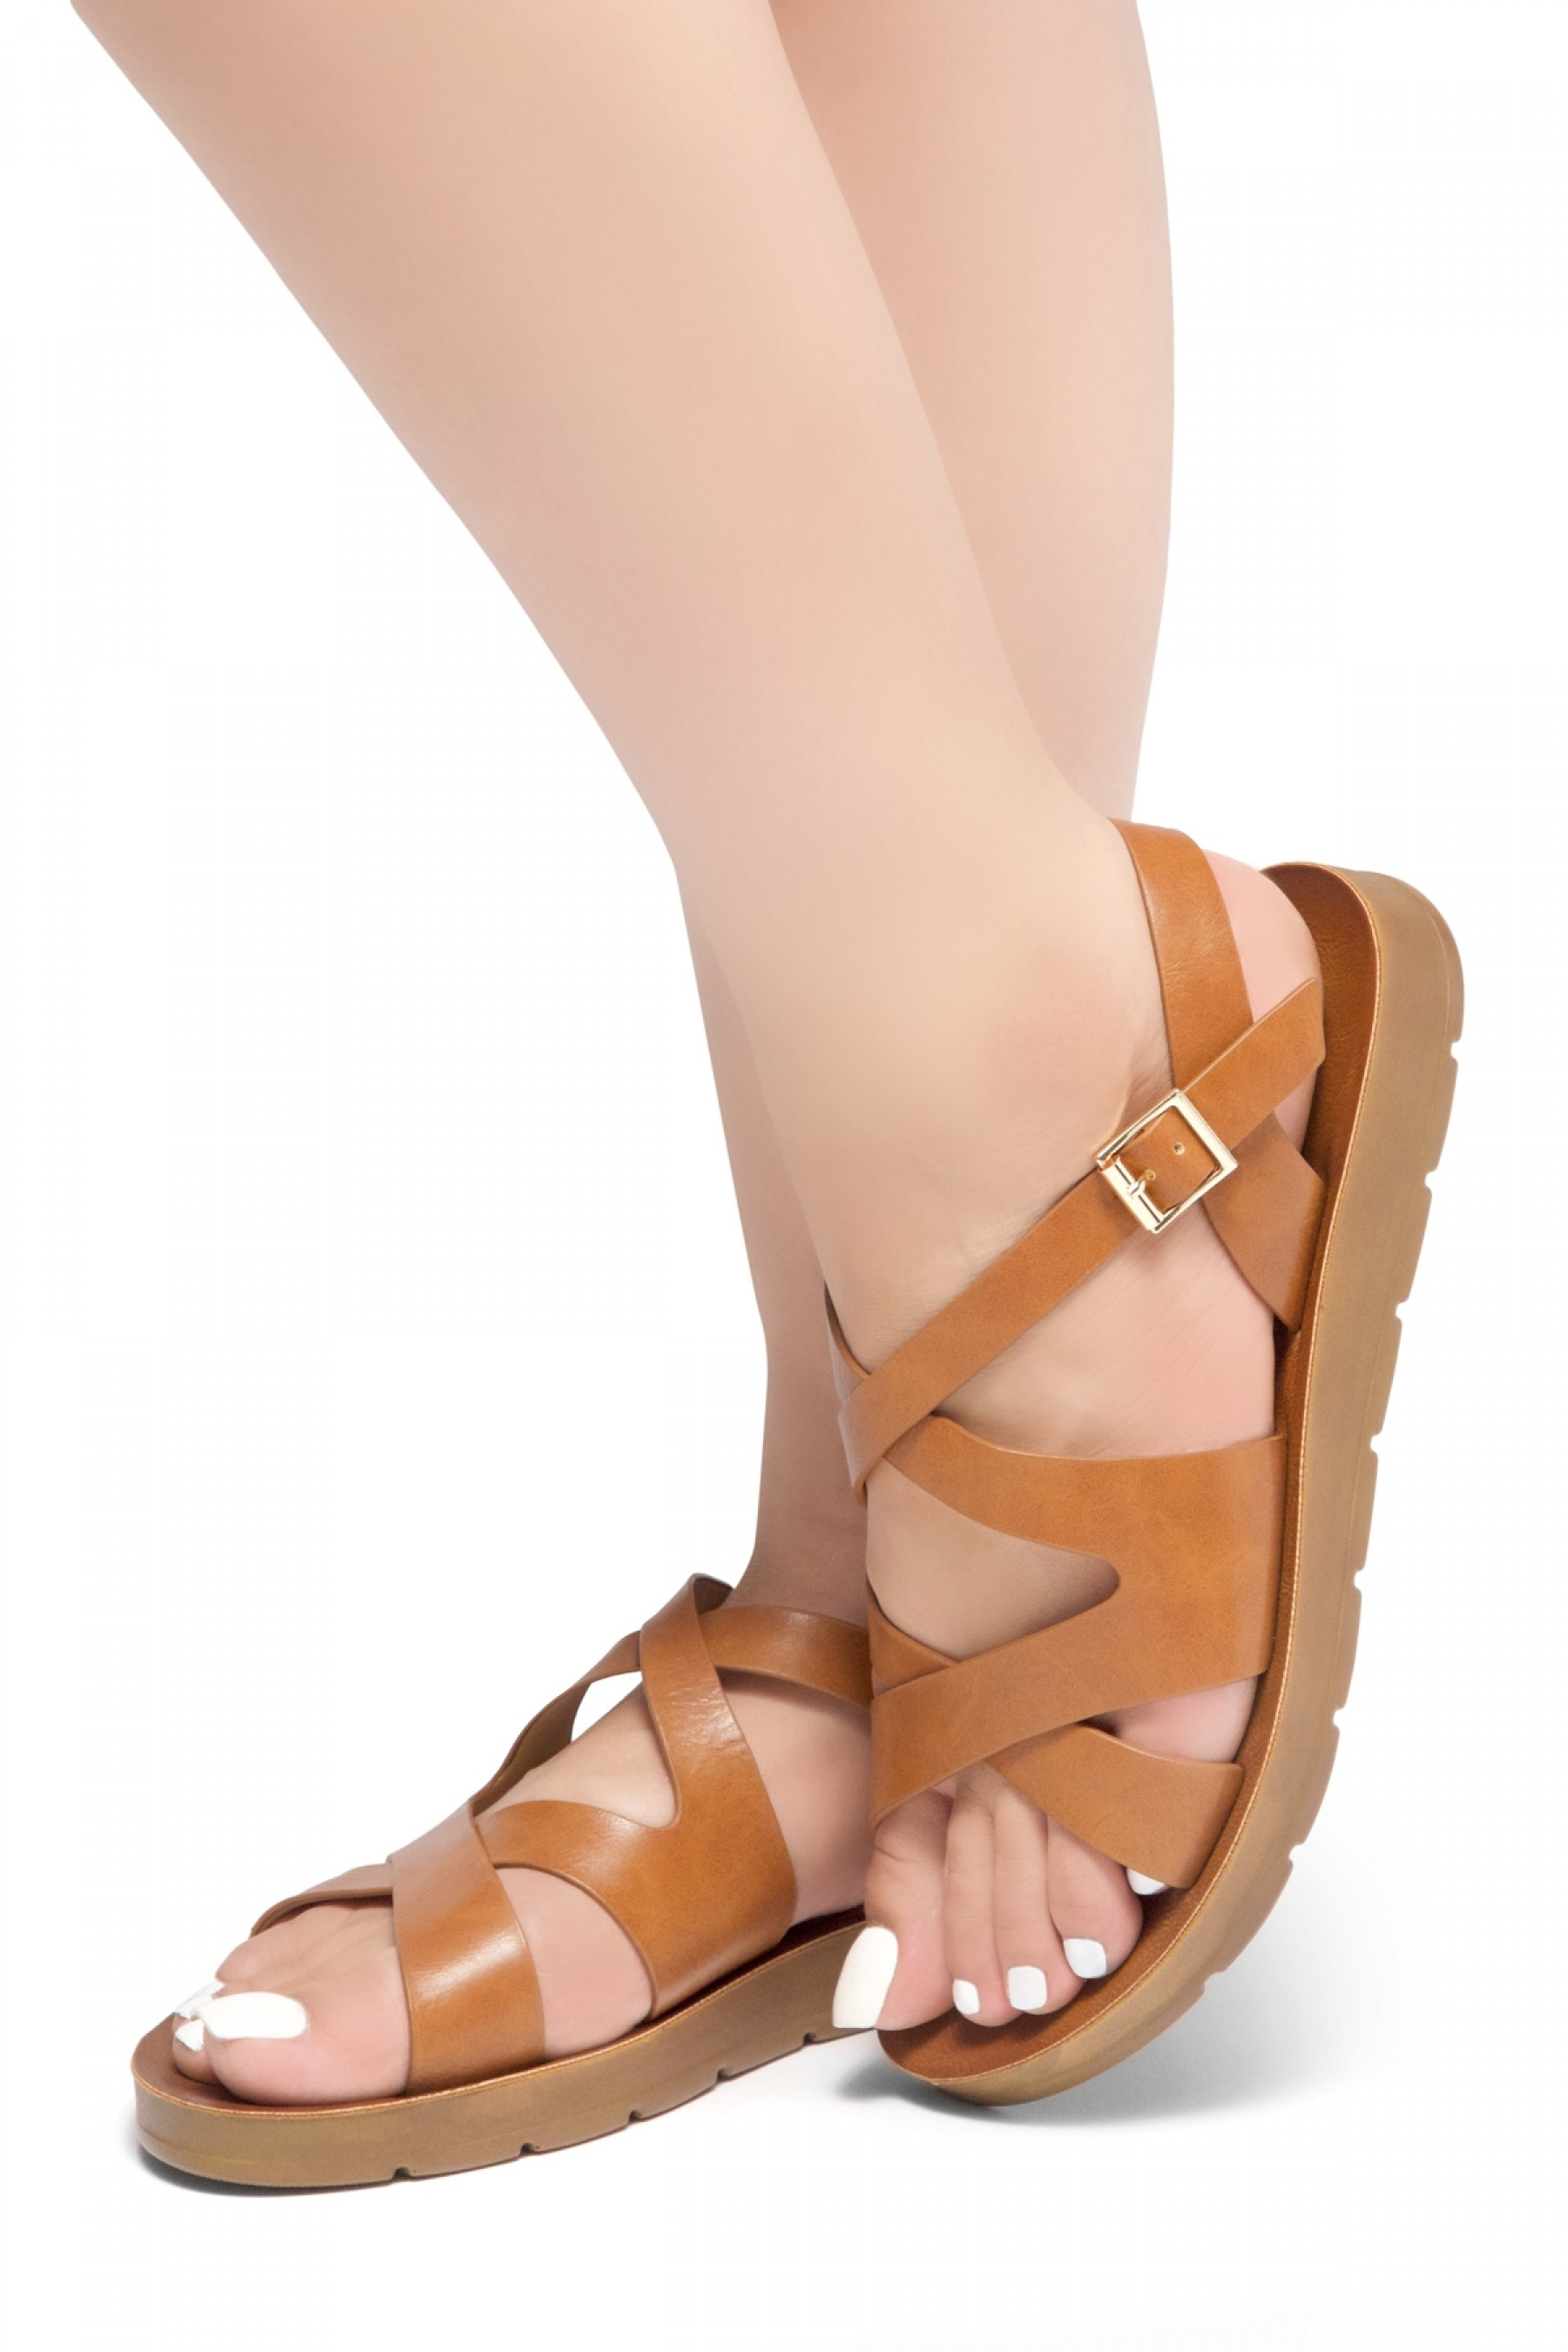 HerStyle Women's Manmade JOURNEY AHEAD- Flat Sandal with strap across vamp(Tan)